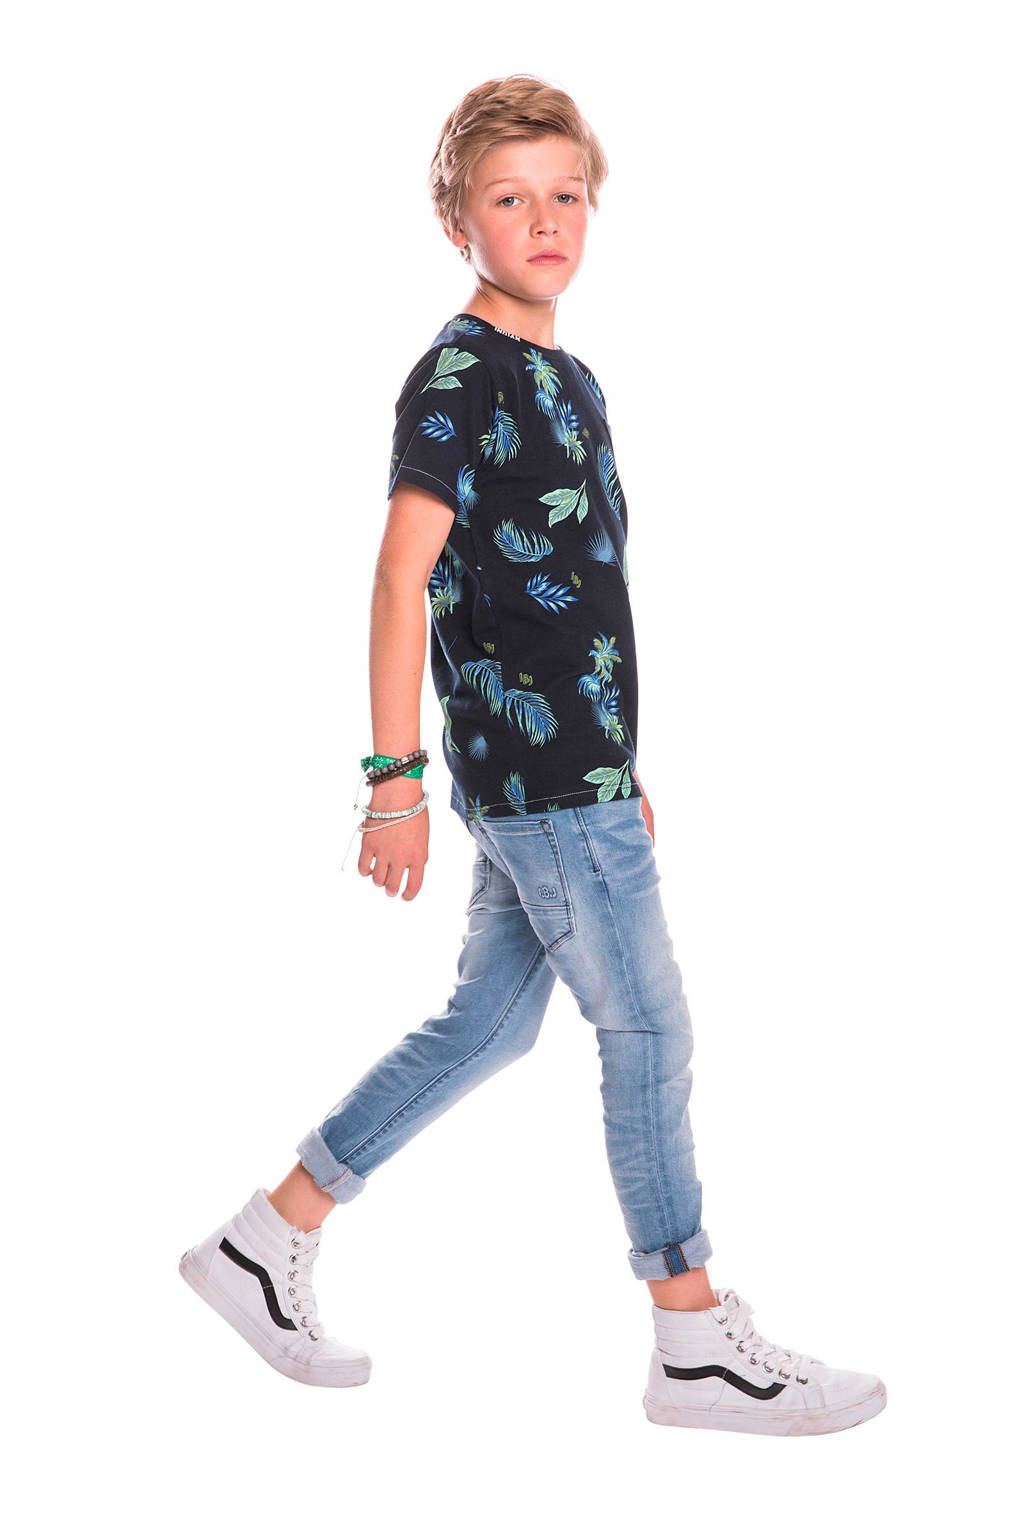 Indian Blue Jeans T-shirt met all over print donkerblauw/groen/blauw, Donkerblauw/groen/blauw